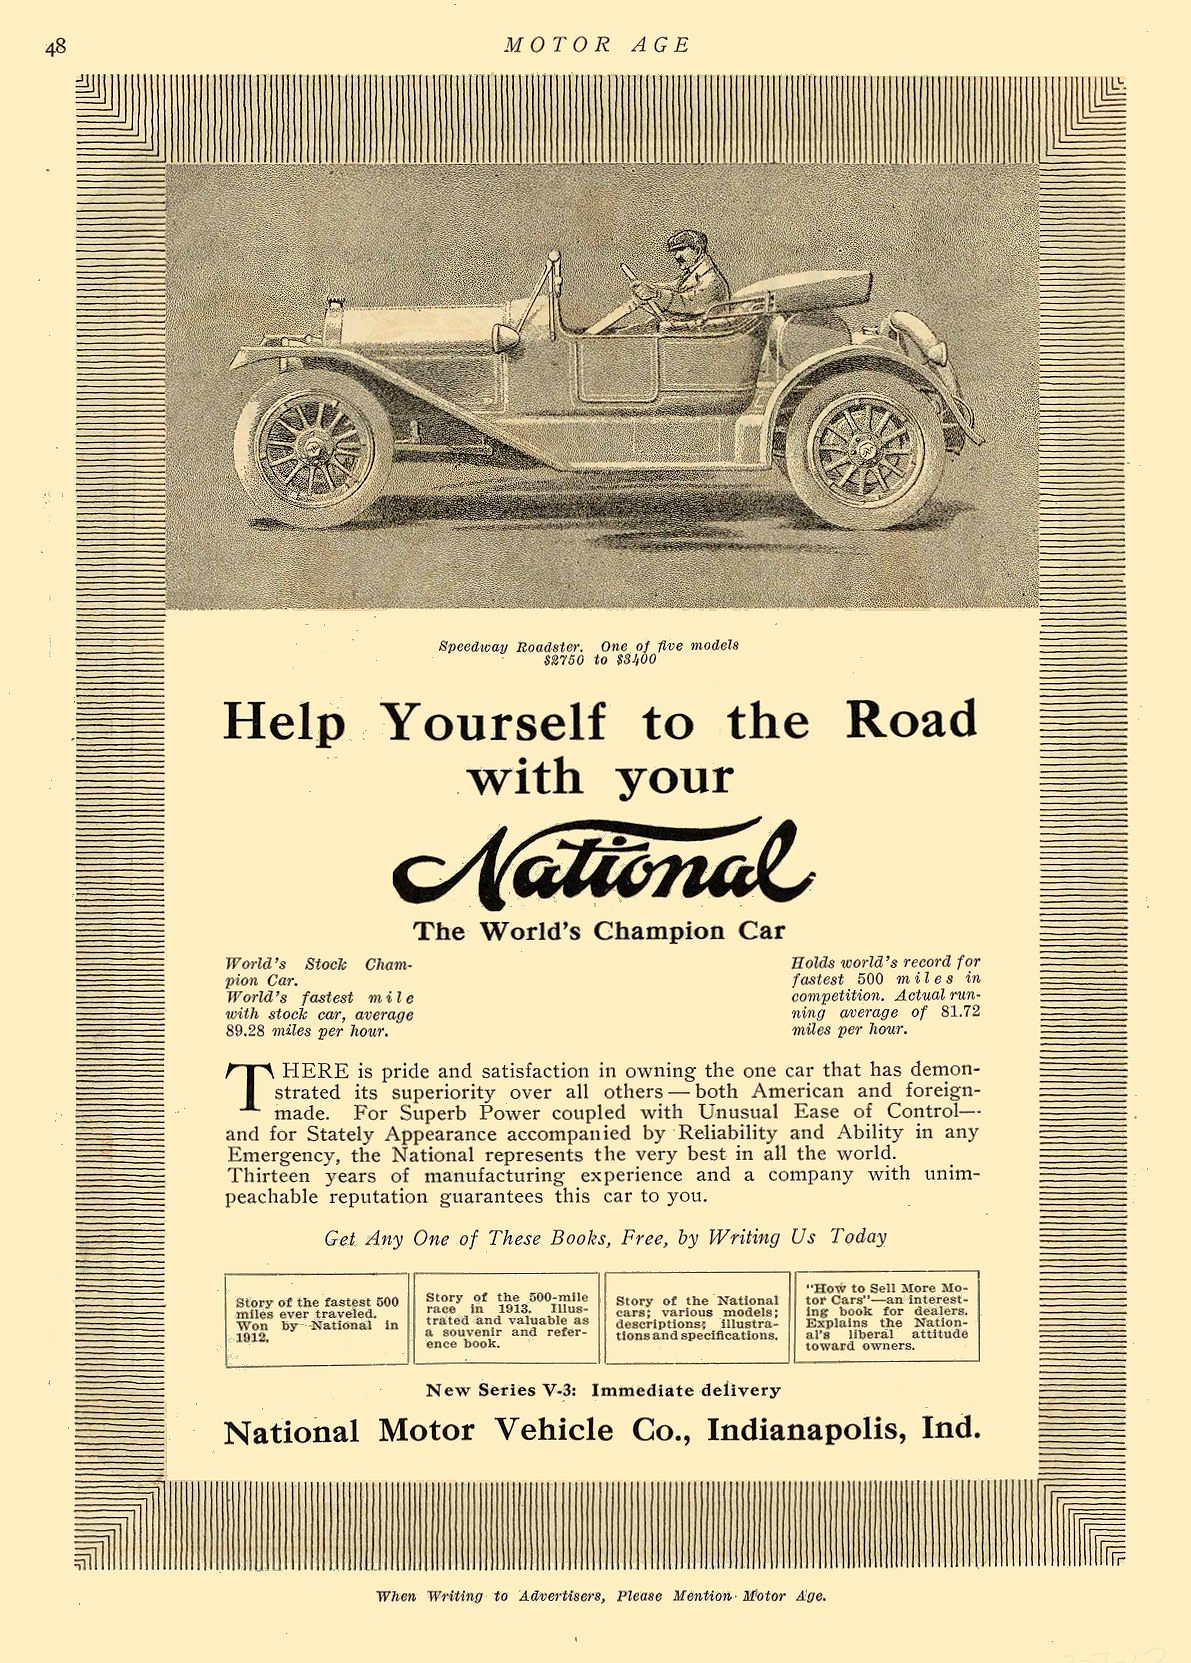 1913 7 7 NATIONAL Help Yourself to the Road with your National National Motor Vehicle Co. Indianapolis, IND MOTOR AGE July 7, 1913 8.25″x12″ page 48